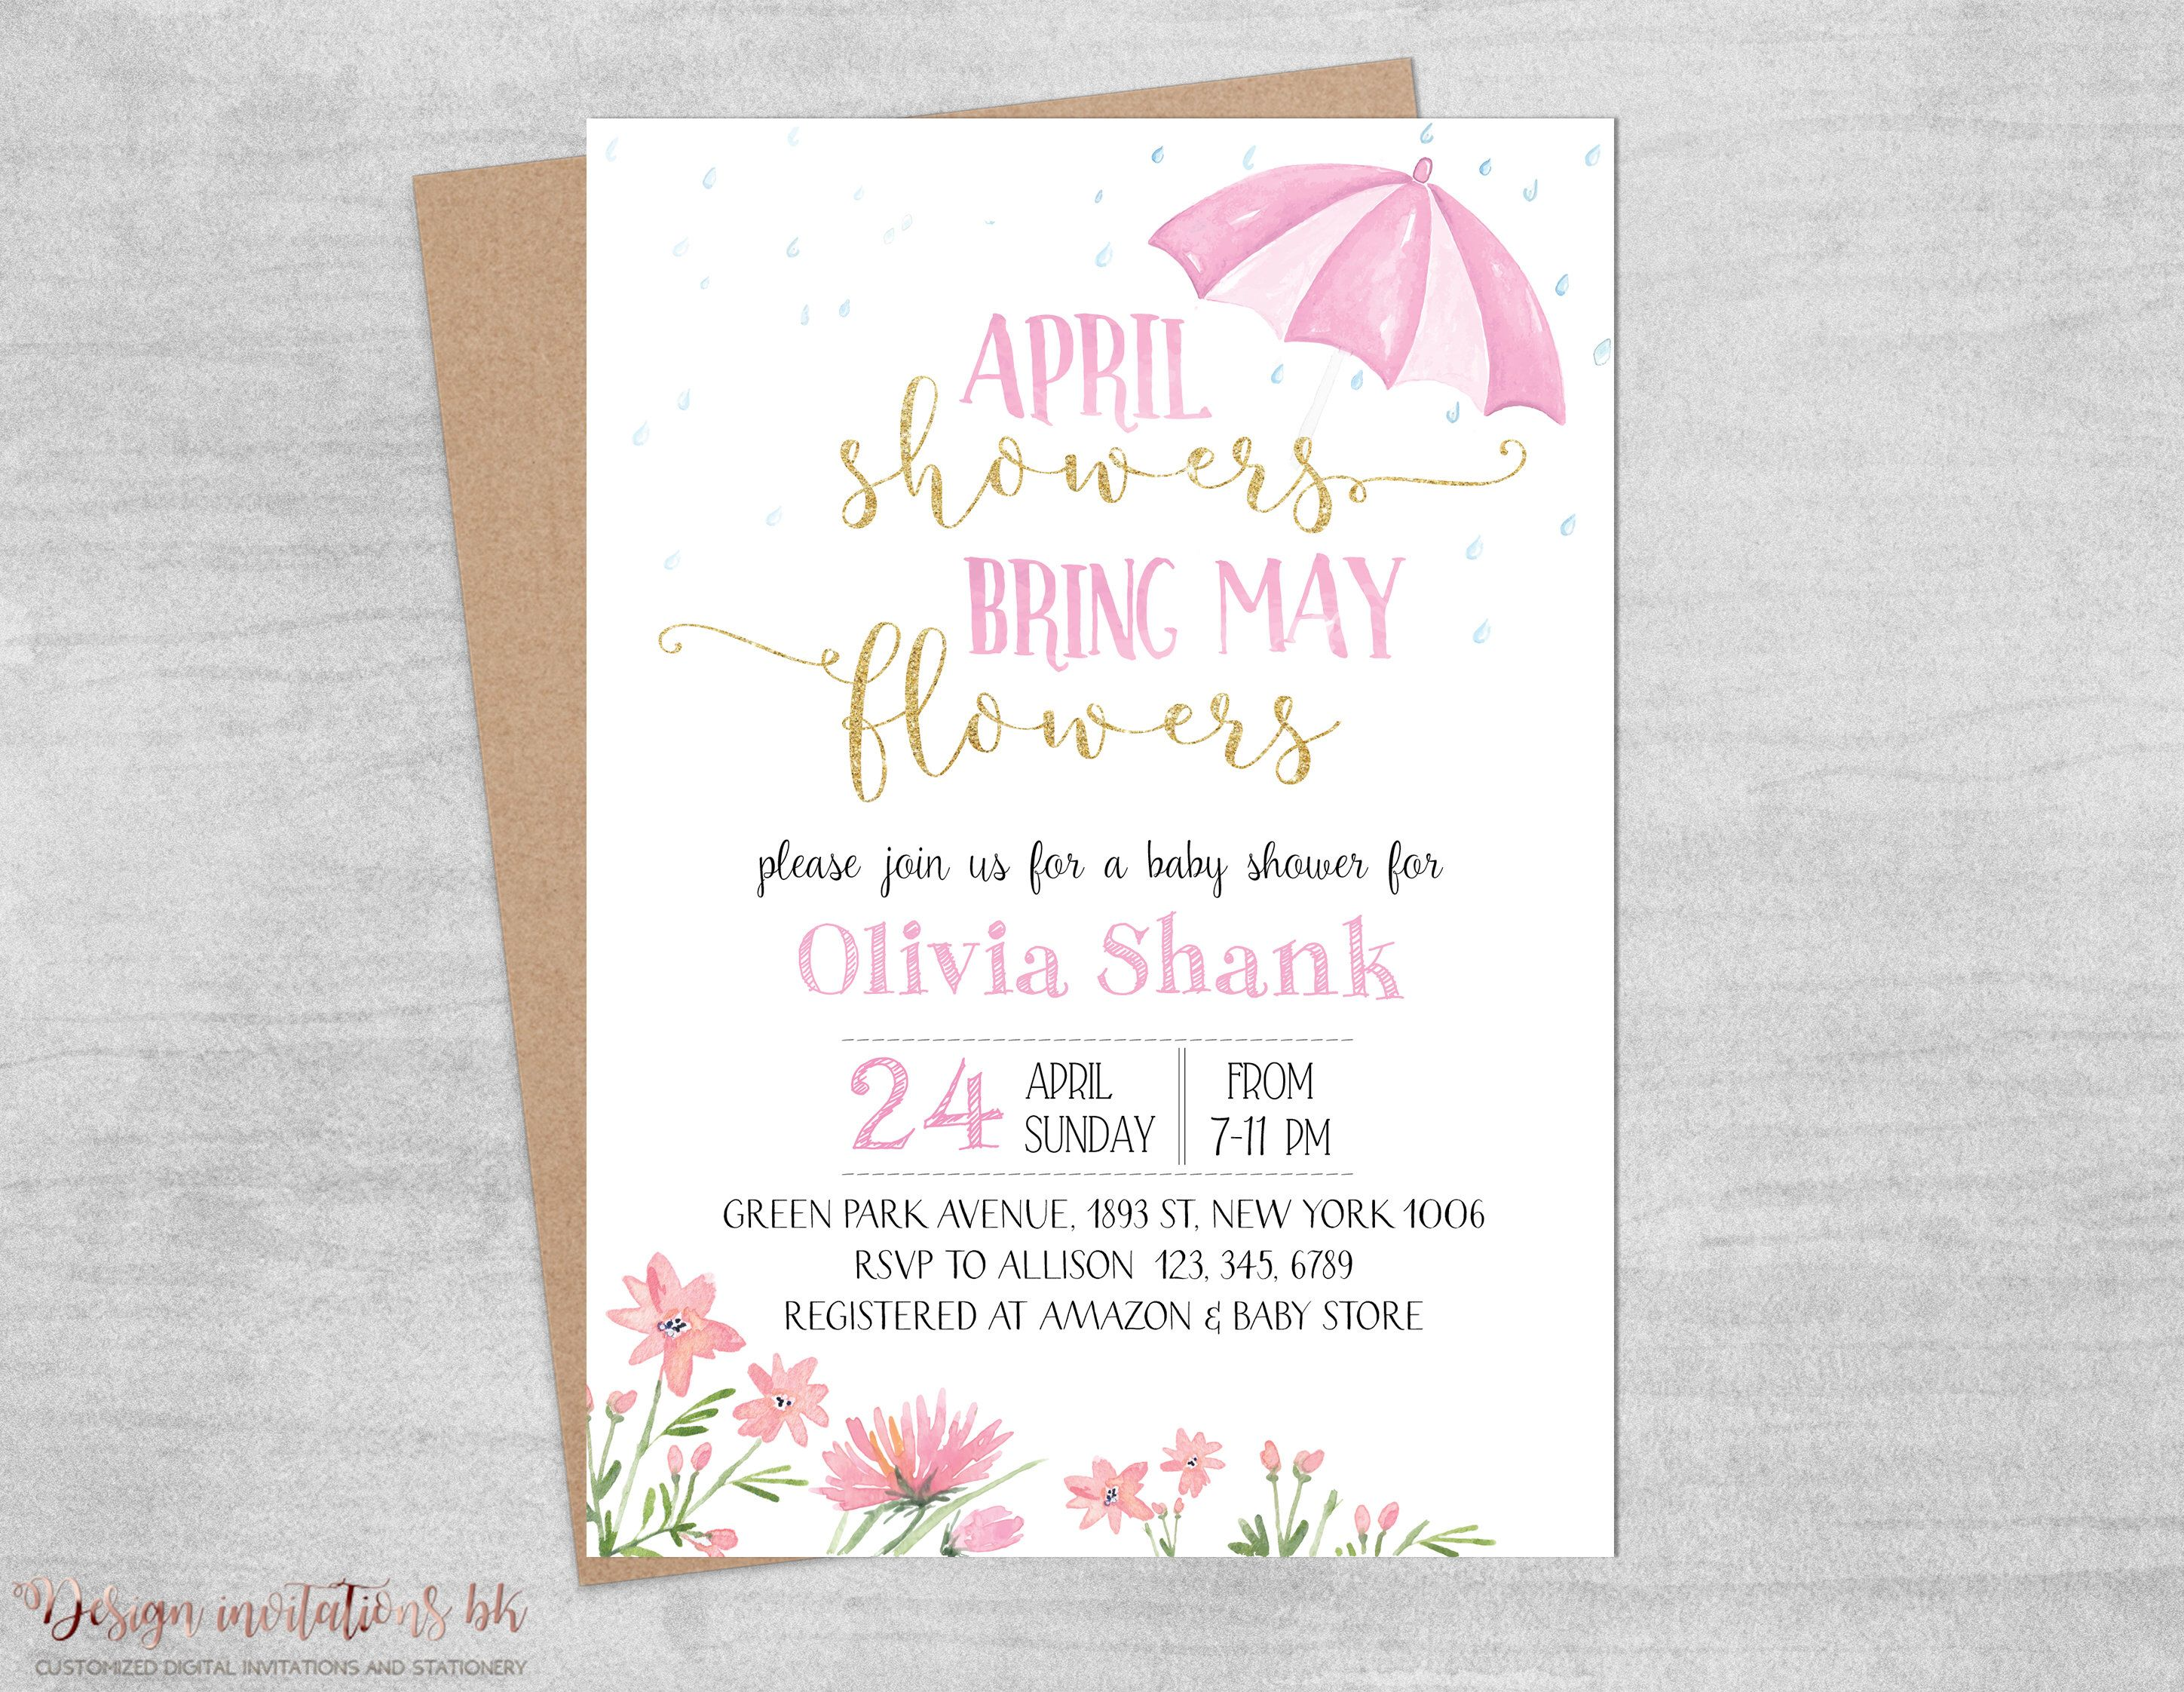 April Showers Bring May Flowers, Baby Shower Invitation Printable ...